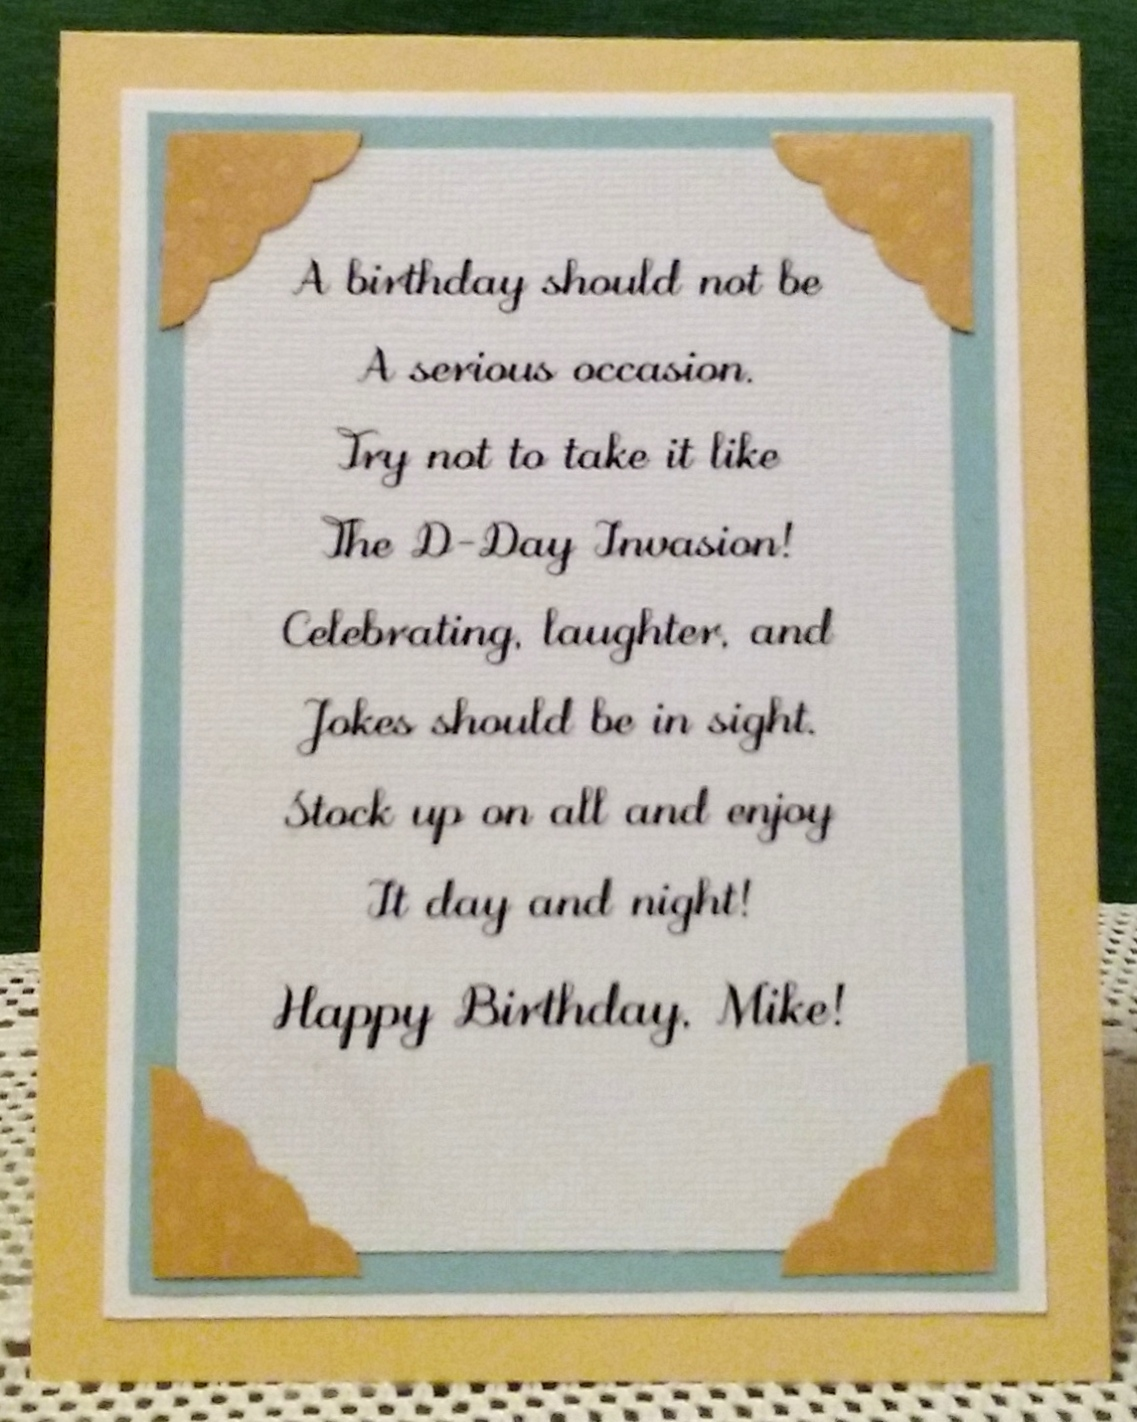 Chatterbox Creations Celebrating Brother On His Birthday Jpg 1137x1422 Cards Verses For Brothers